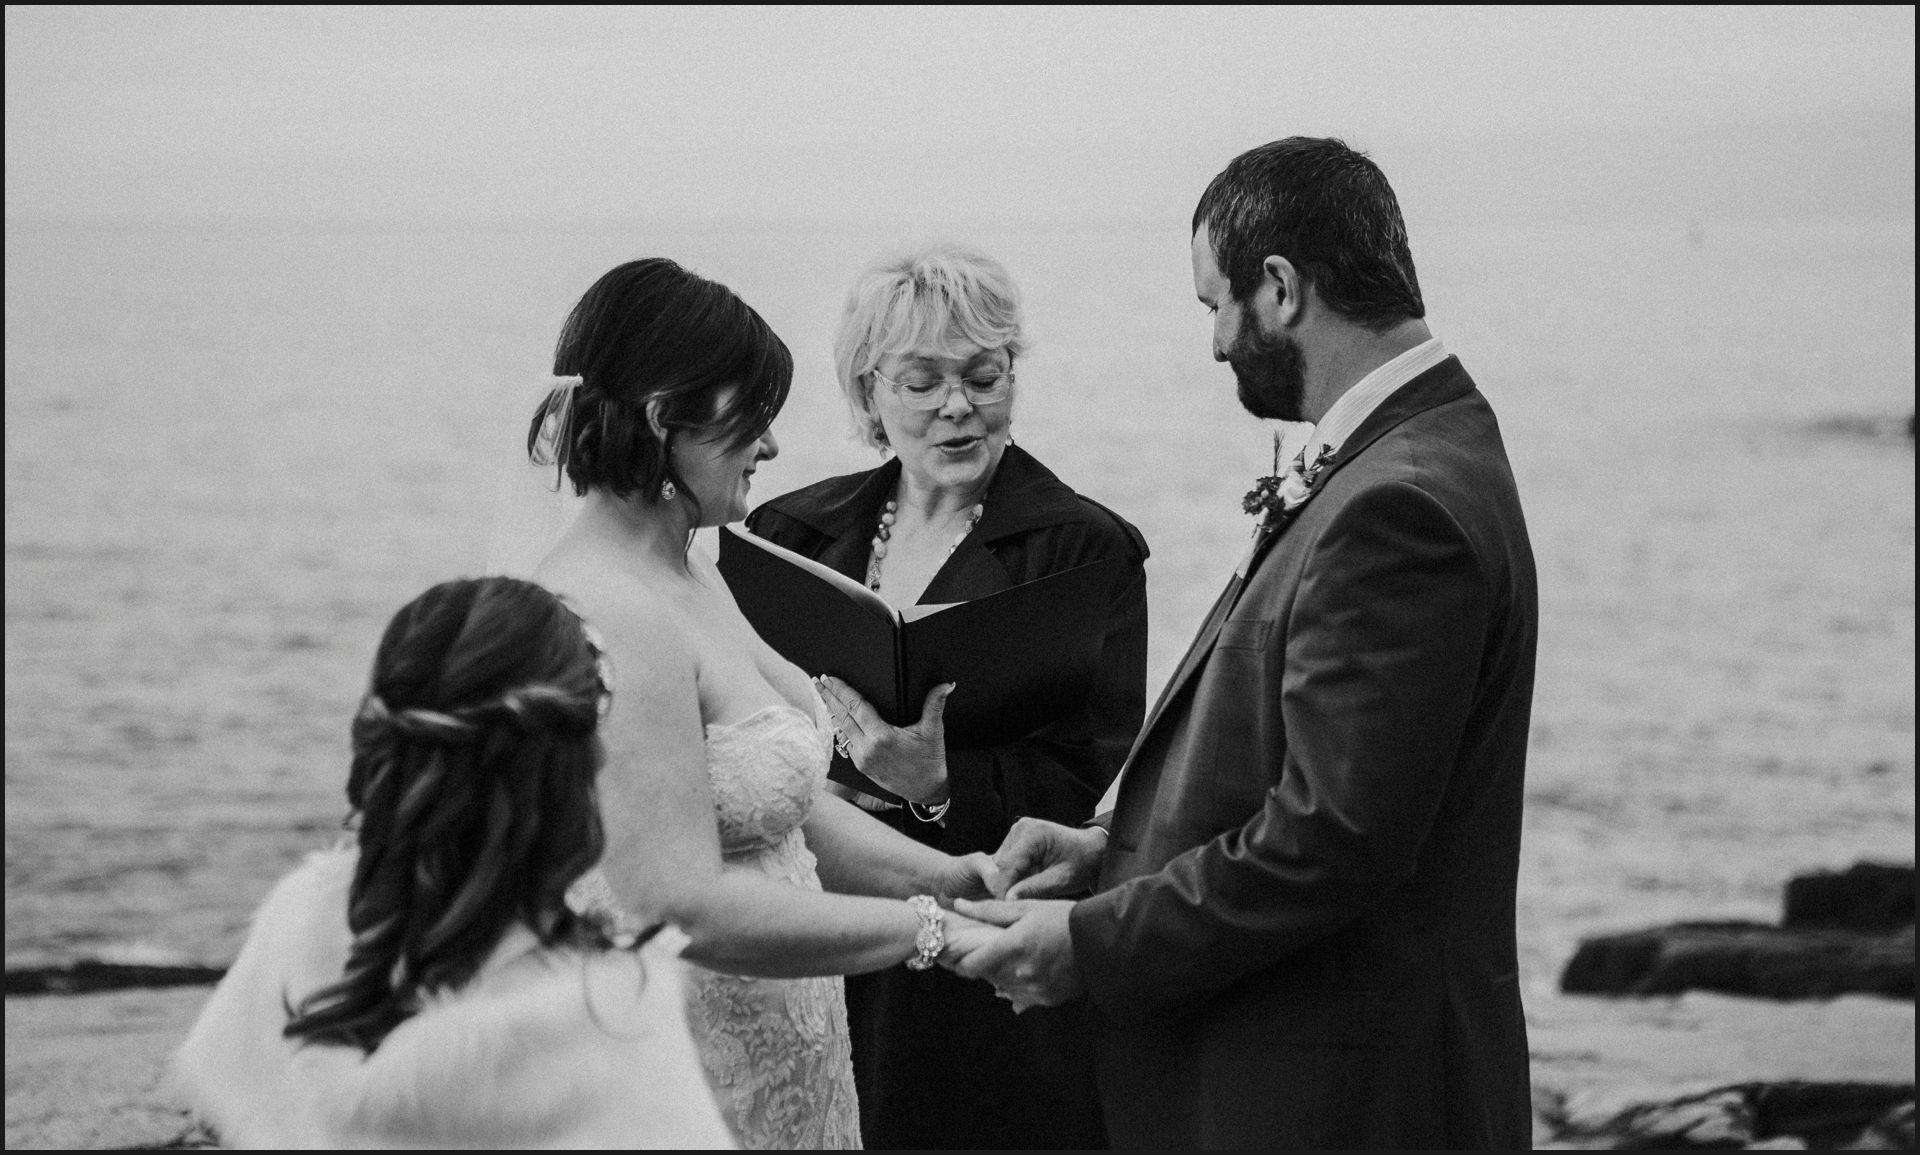 black and white, wedding, ceremony, celebrant, bride and groom, hand in hand, wedding by the sea, ocean view